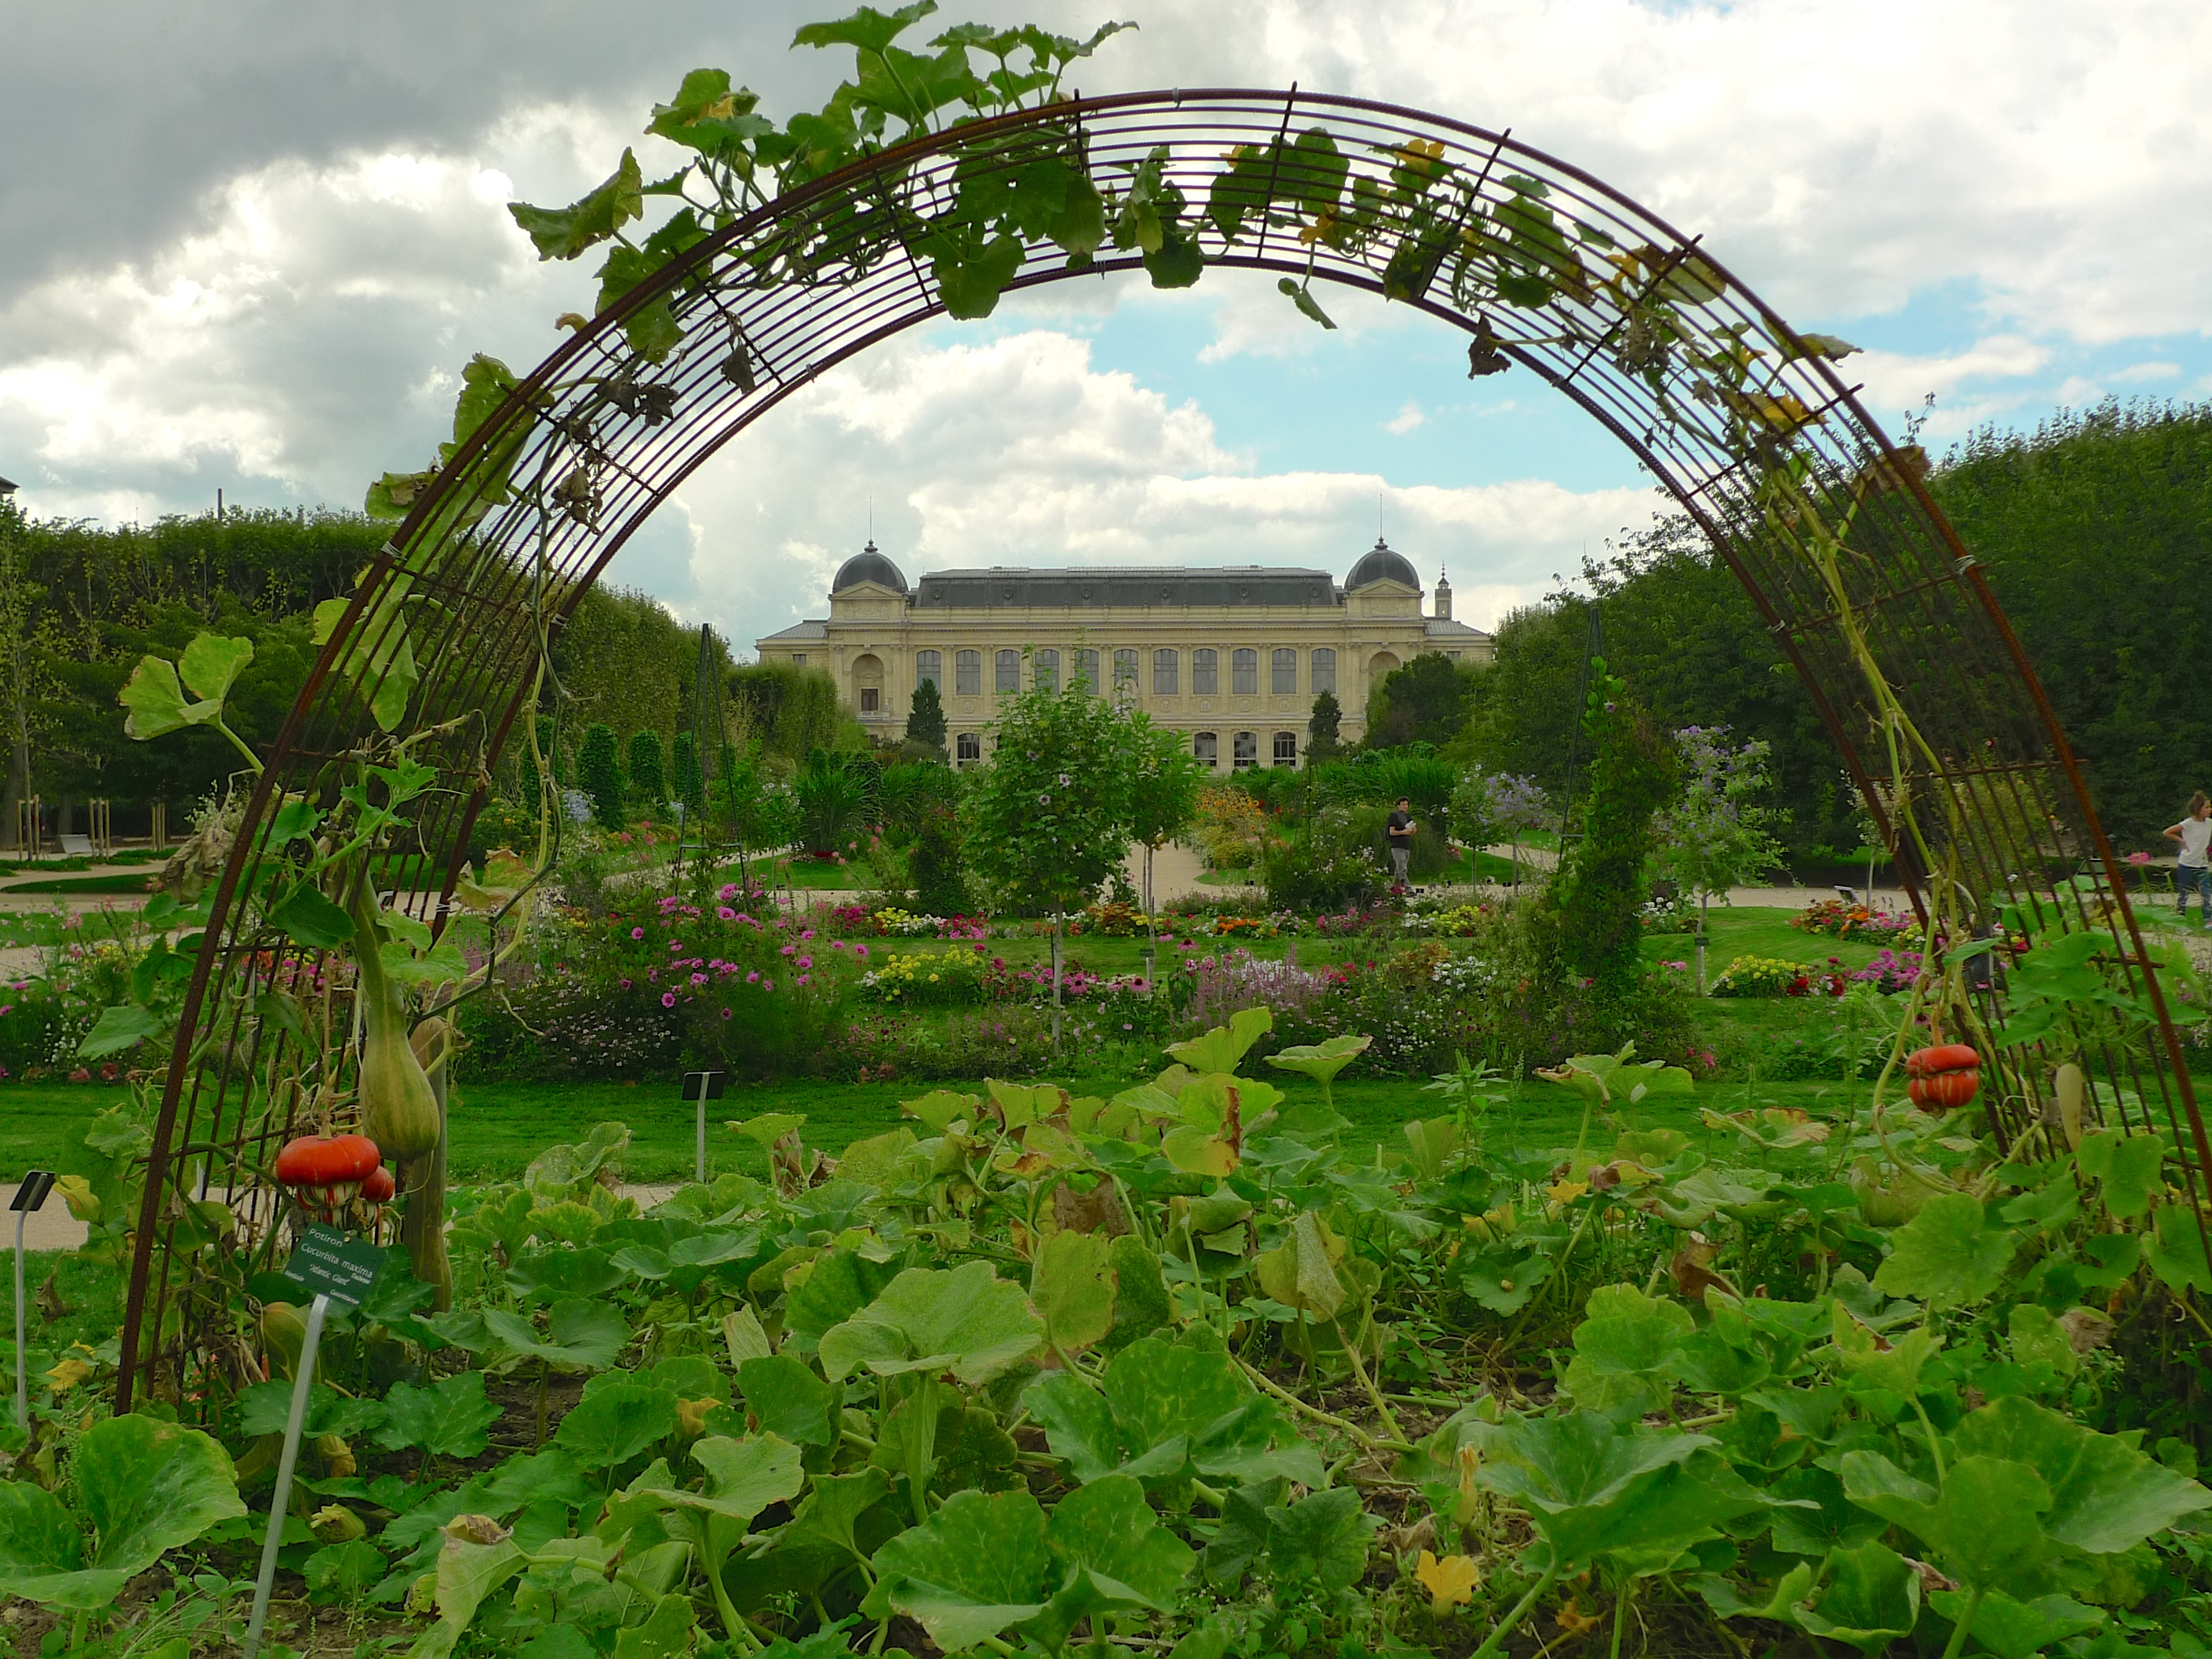 Jardin des plantes soundlandscapes 39 blog for Jardin plantes paris